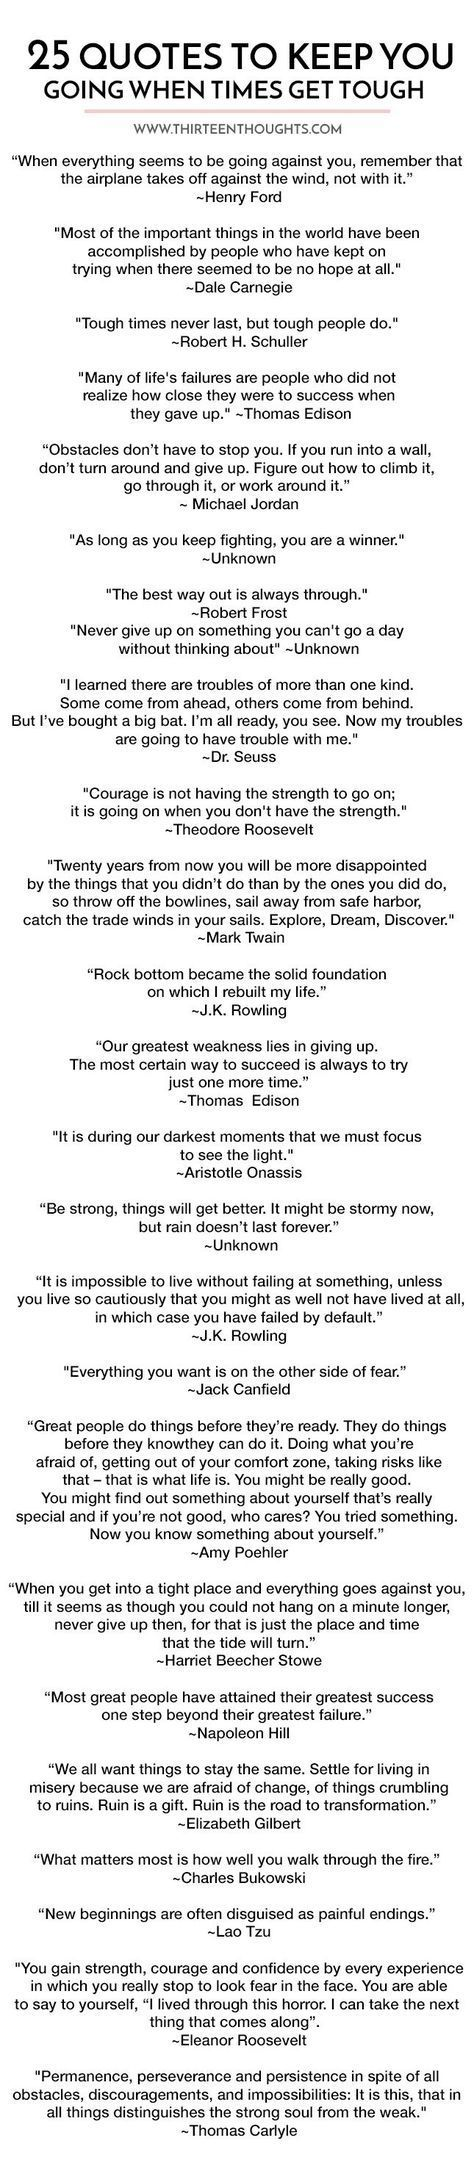 25 Quotes To Keep You Going When Times Get Tough Printable List 25th Quotes Wise